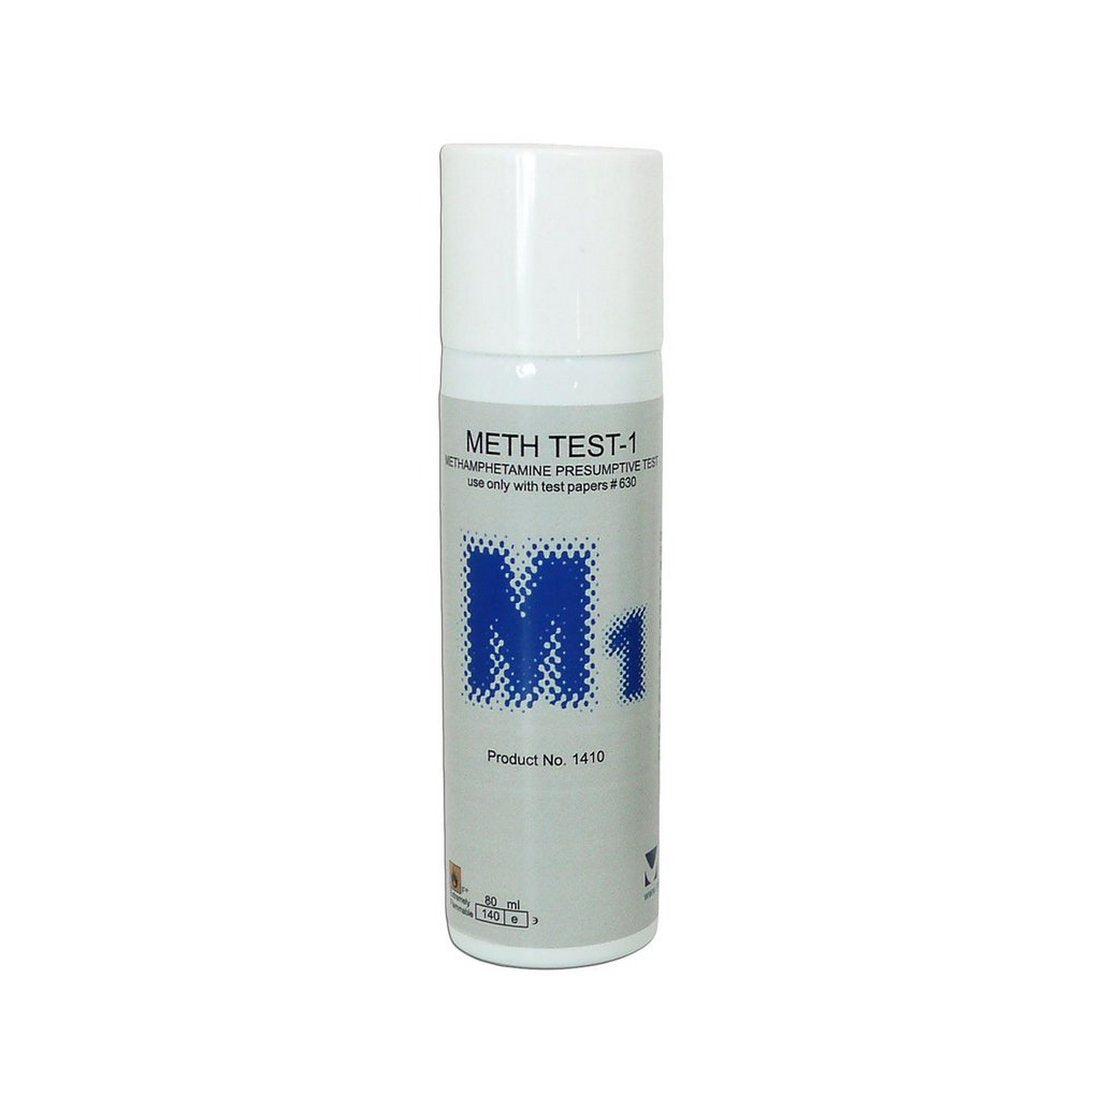 Mistral 1410 Meth-Test 1 (Regular) Drug Detection Aerosol